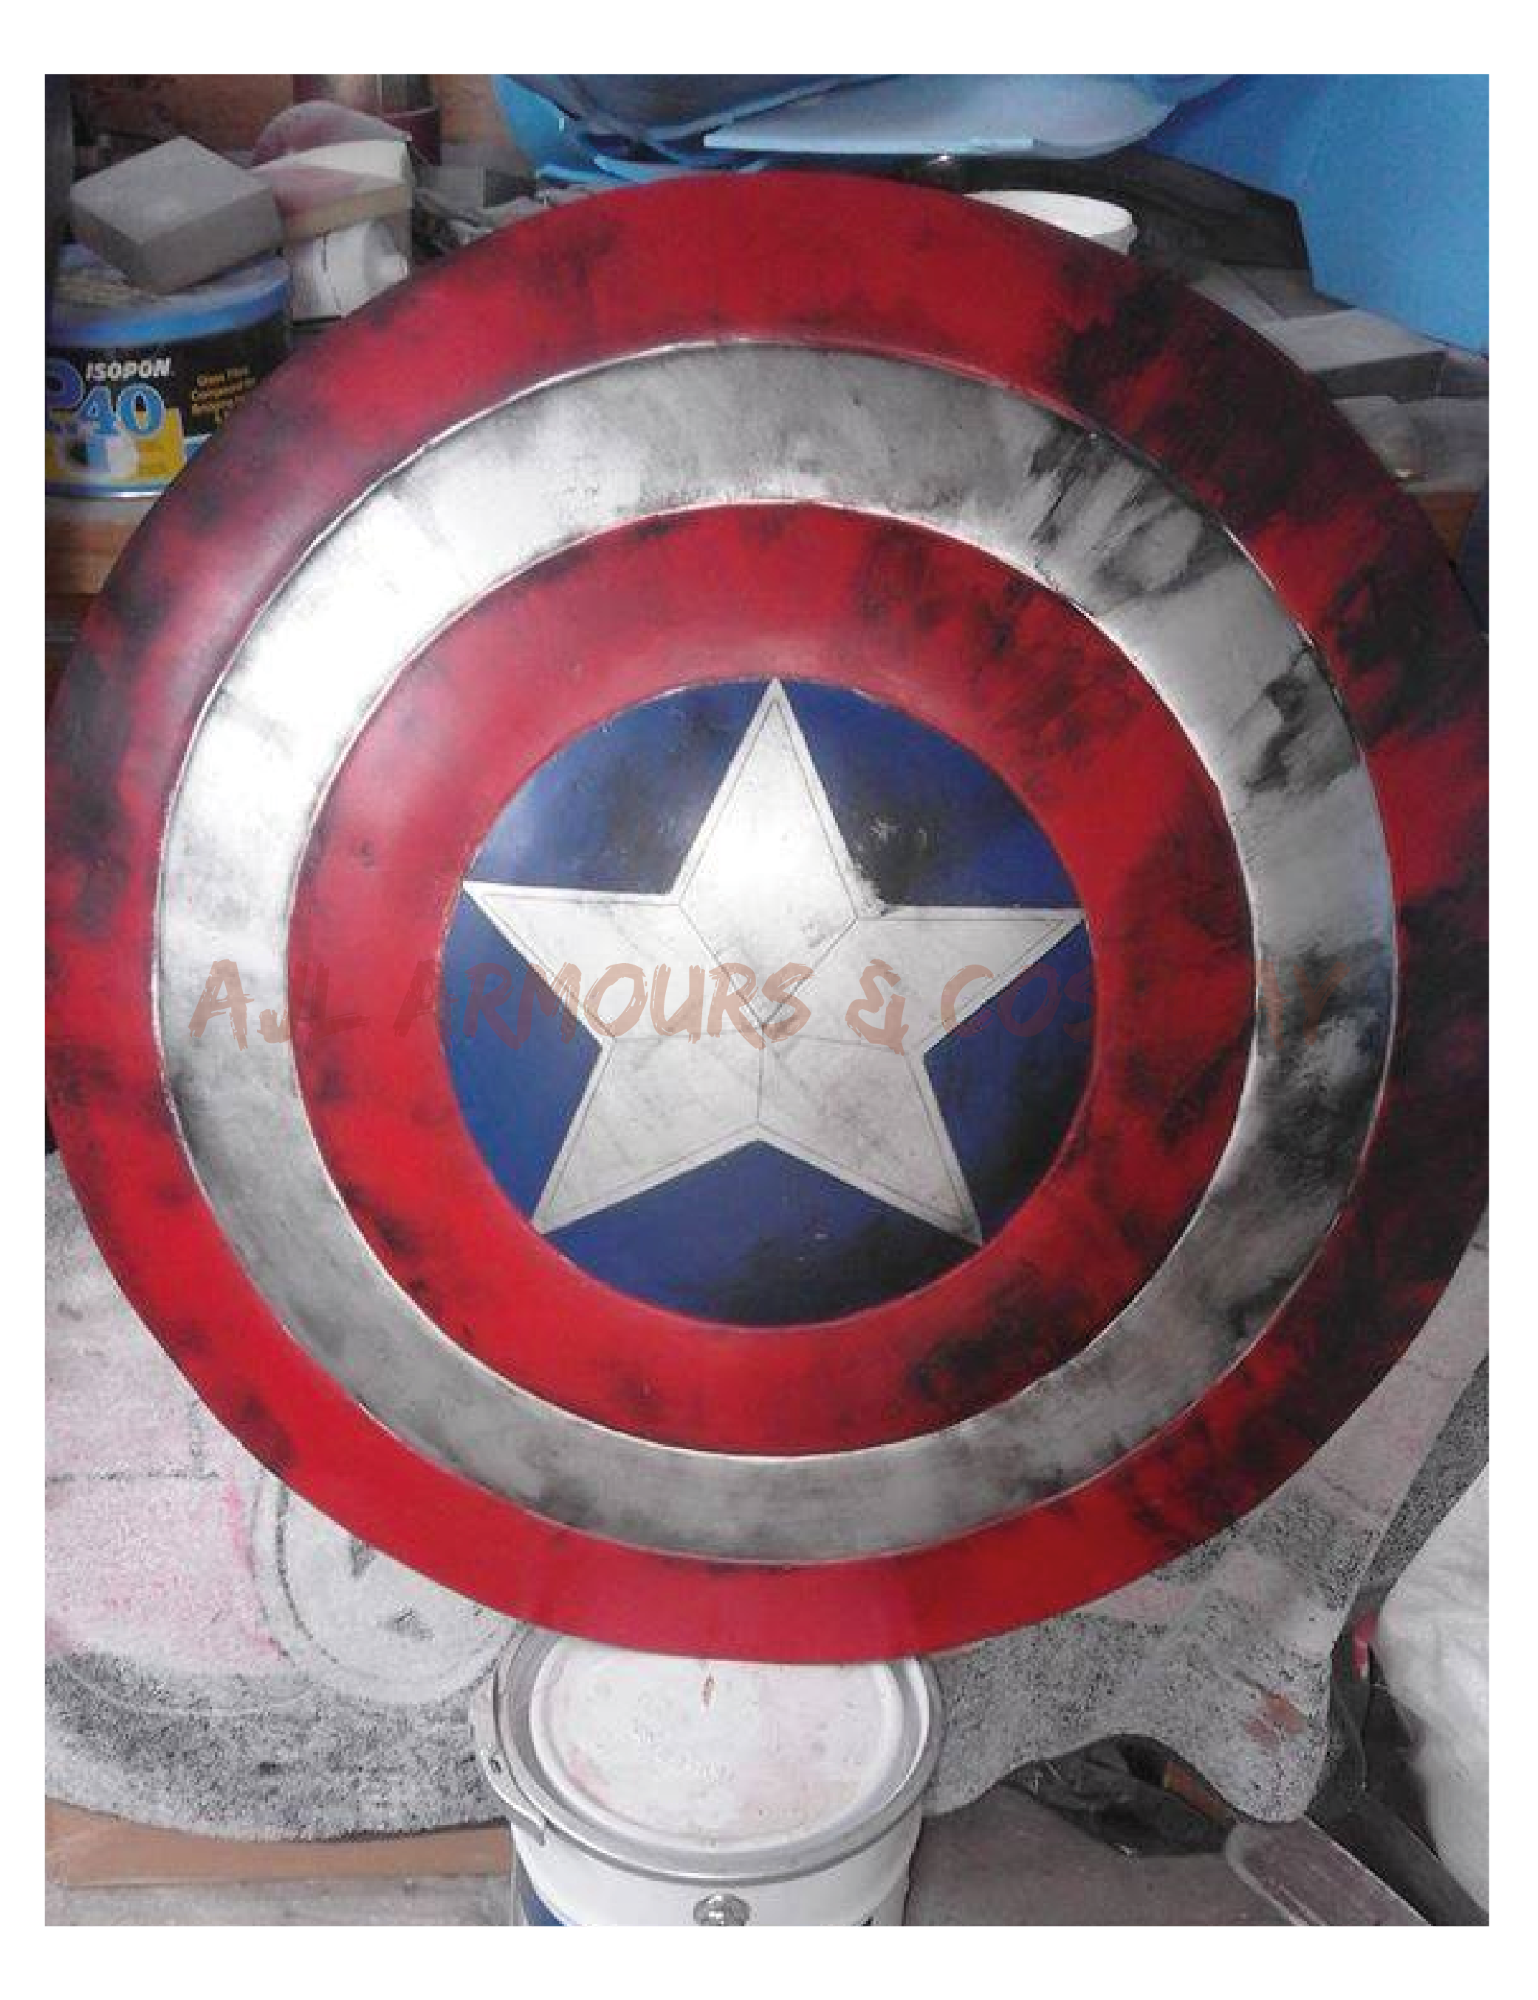 Battle Damaged Captain America Shield Prop